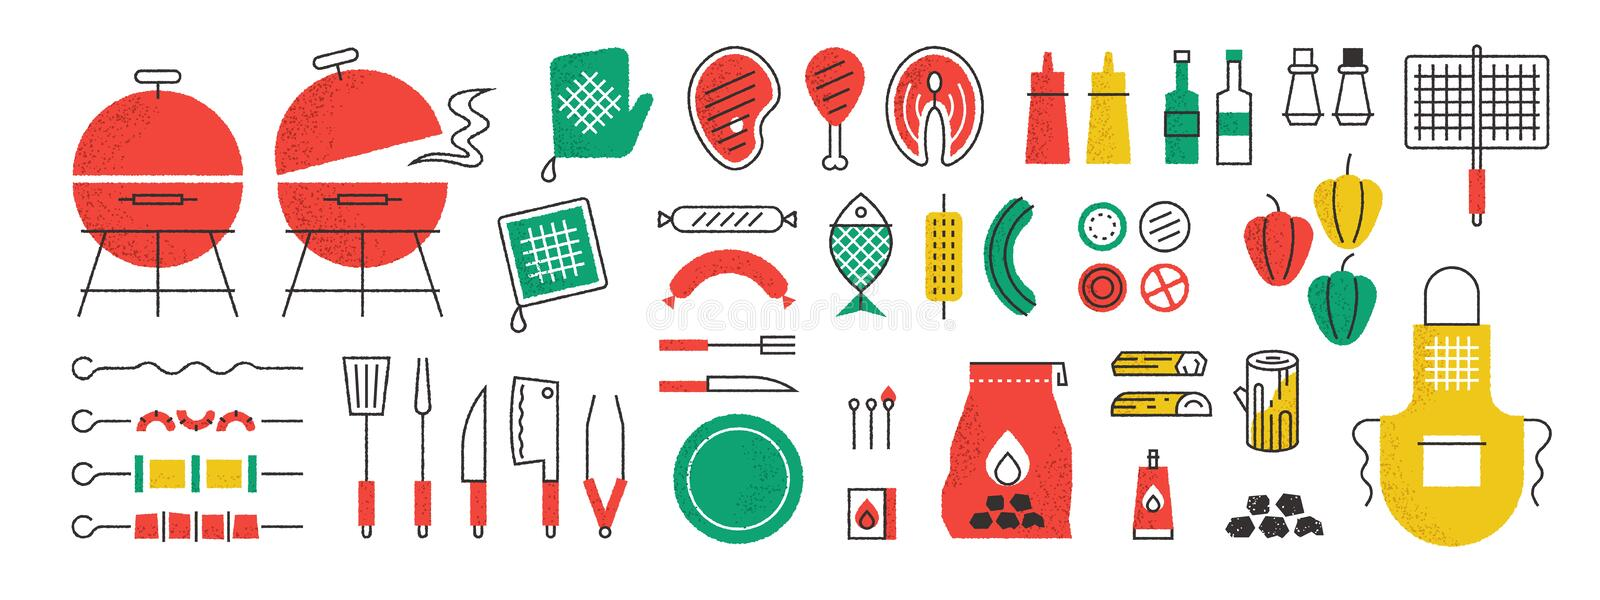 Bbq and grill icons. Summer picnic with cooking barbecue meet and kitchen equipment, sauce spatula and pork on skewer vector illustration